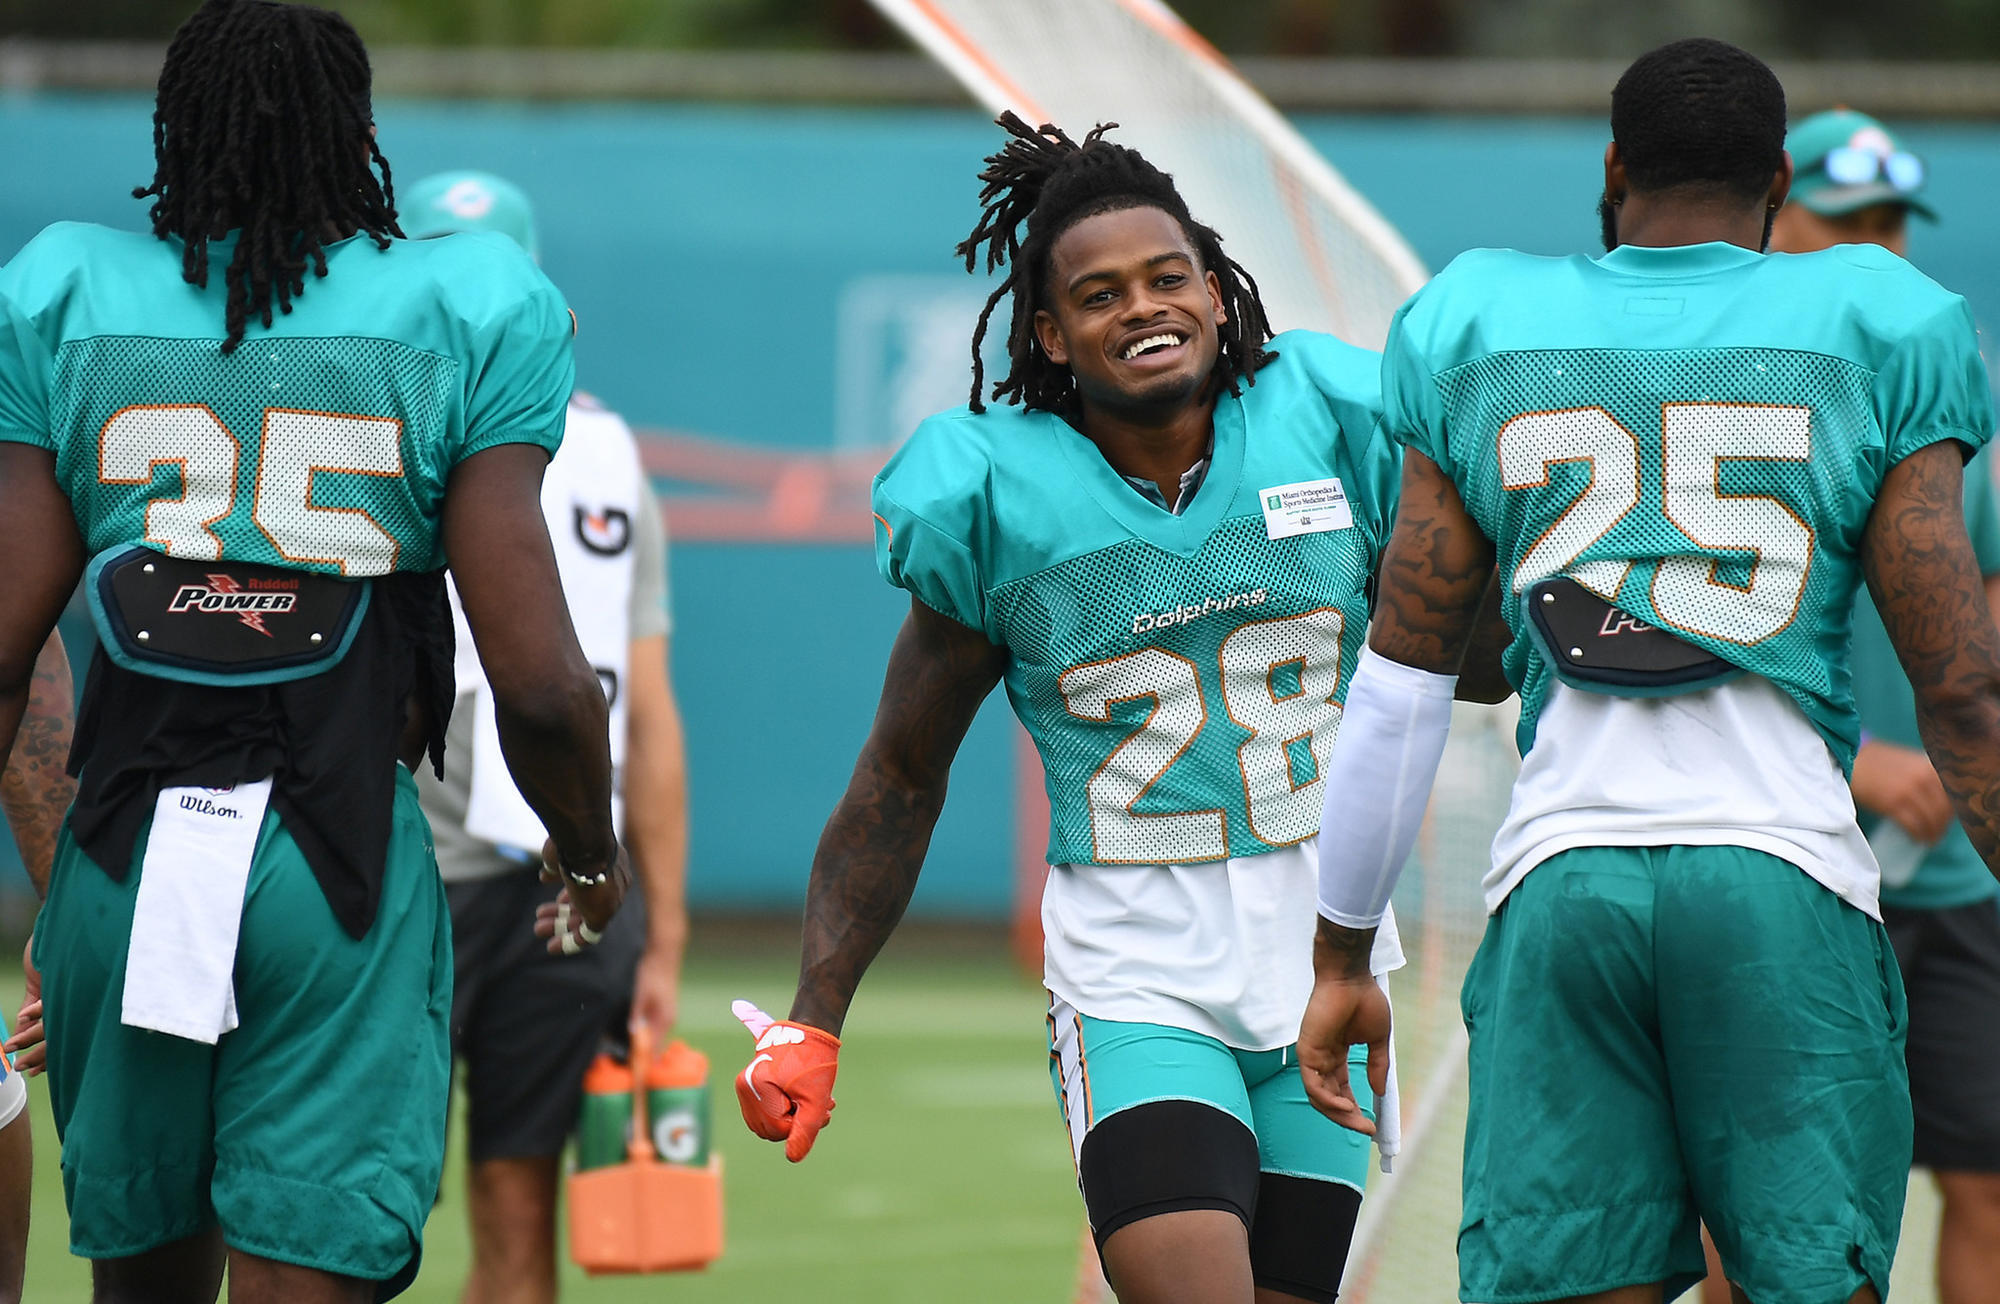 Fl-sp-dolphins-preview-box-20180816